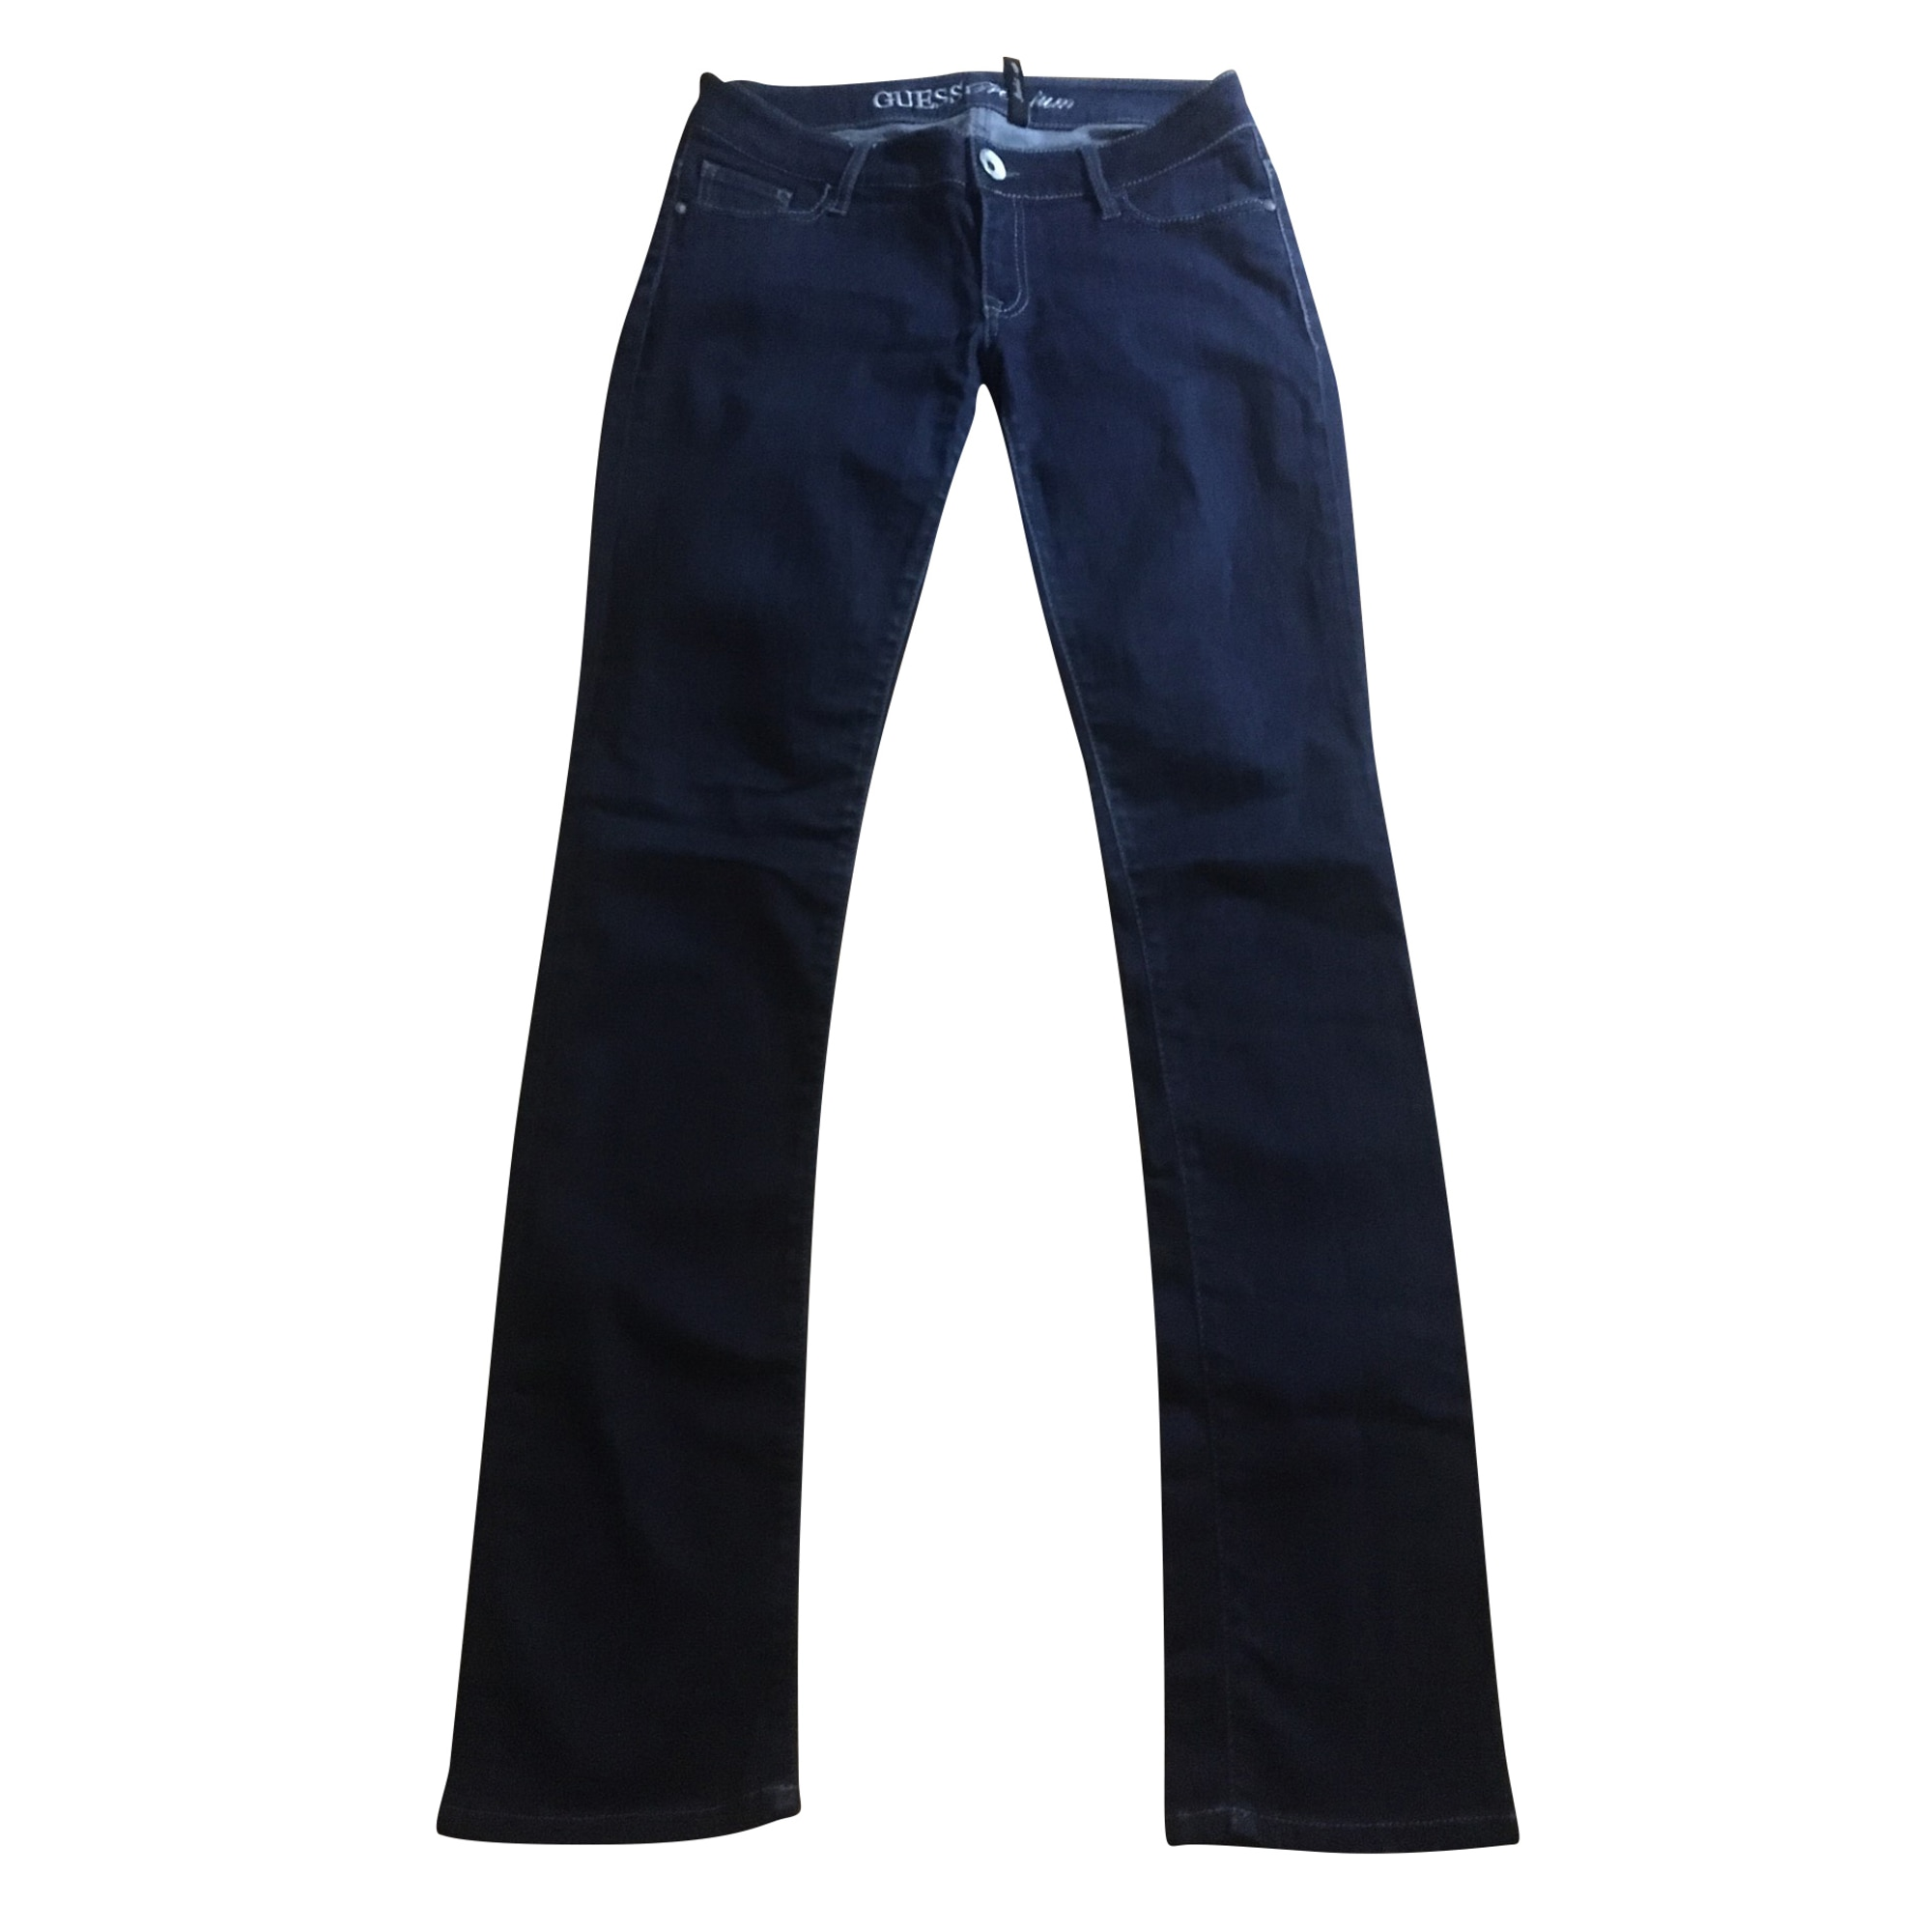 Straight Leg Pants GUESS Blue, navy, turquoise